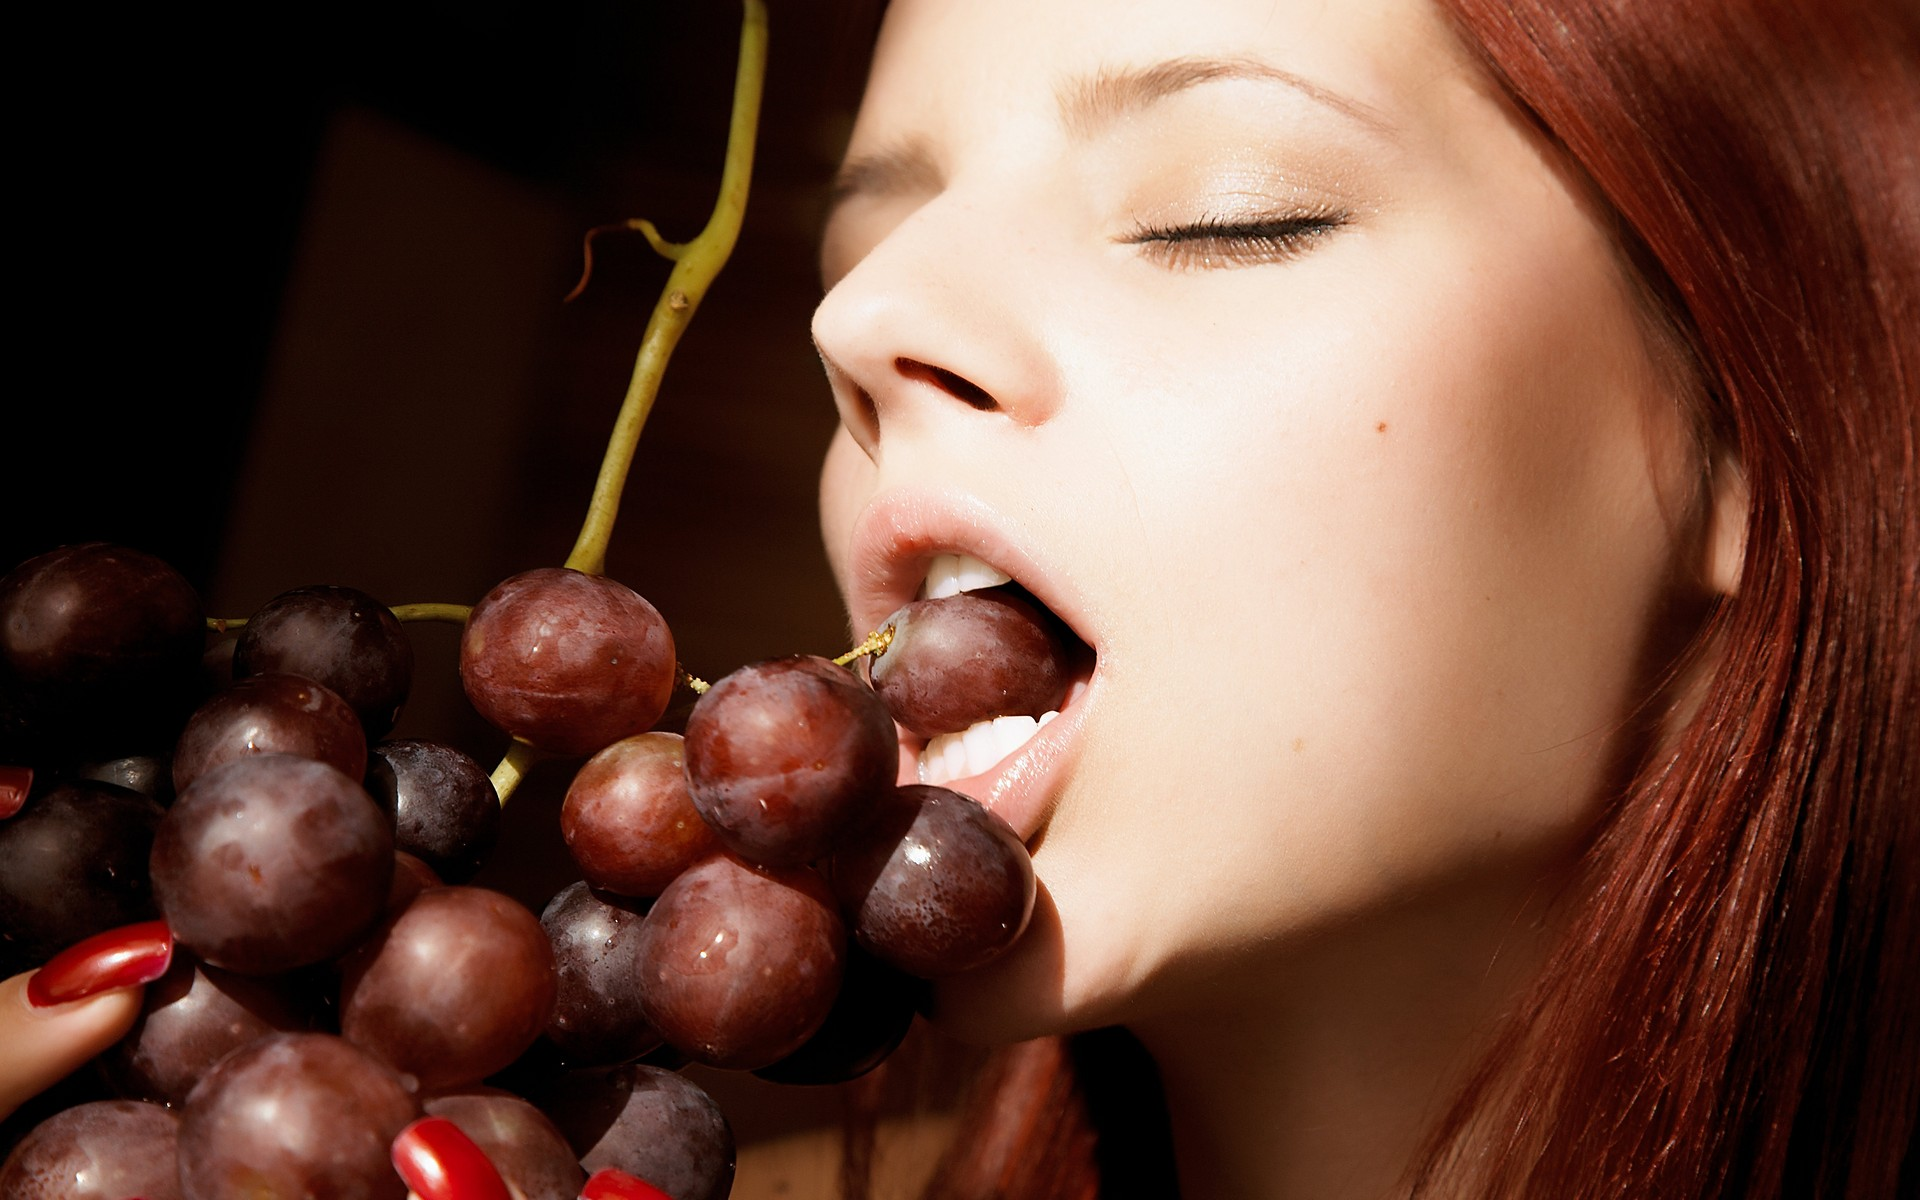 women-grapes-fruits-1920x1200